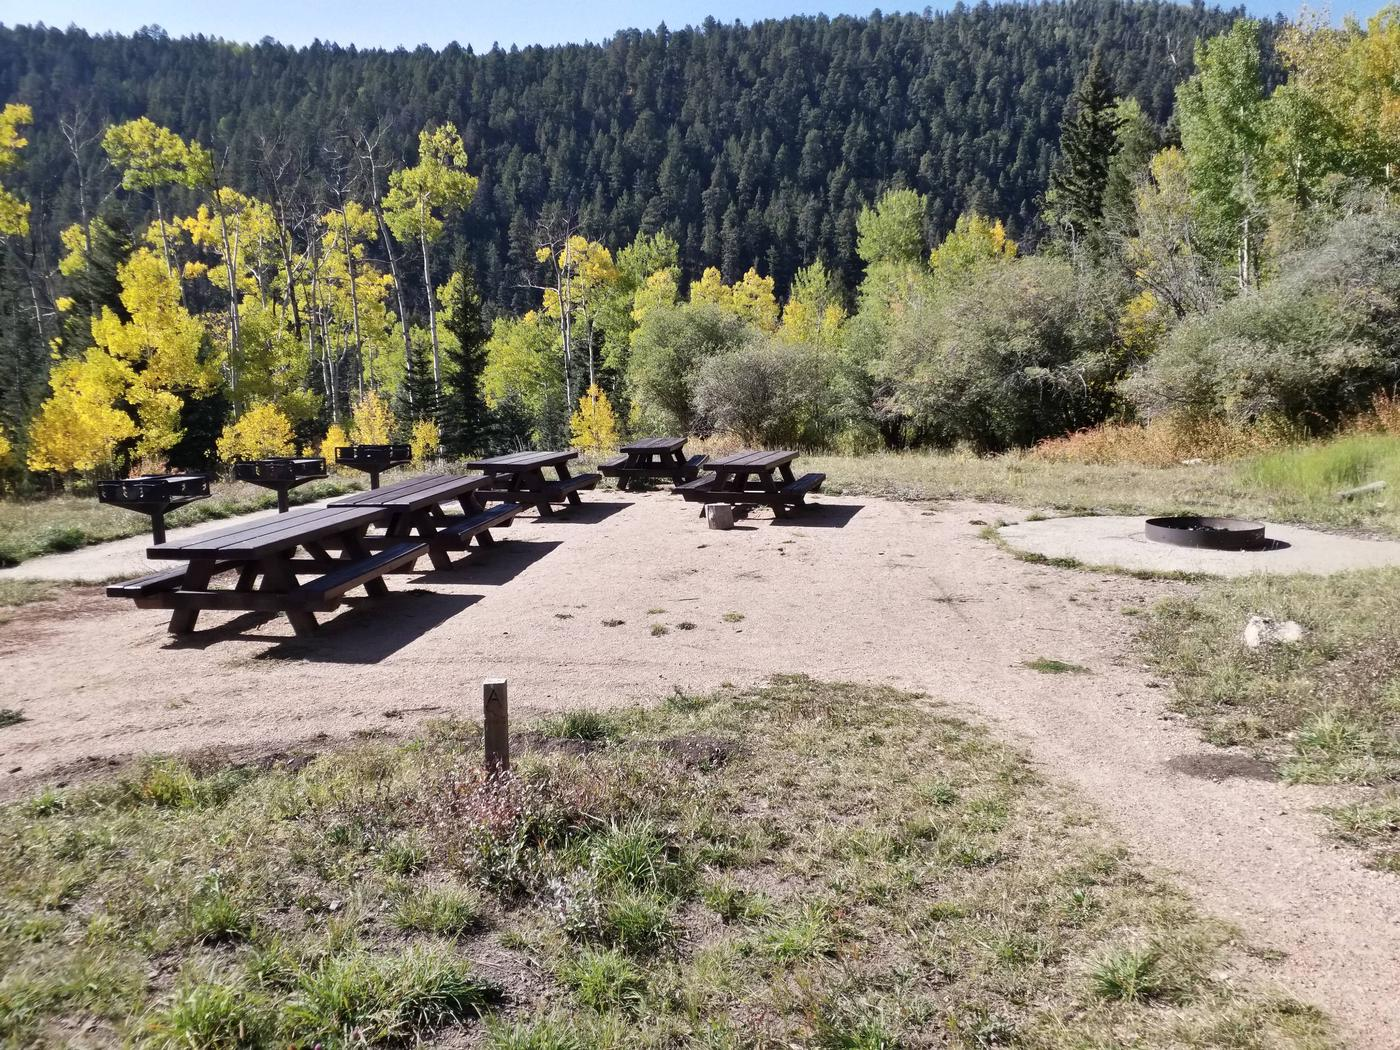 A campground with picnic tables, fire ring and golden aspen in the background.Jack's Creek Group Area Site A